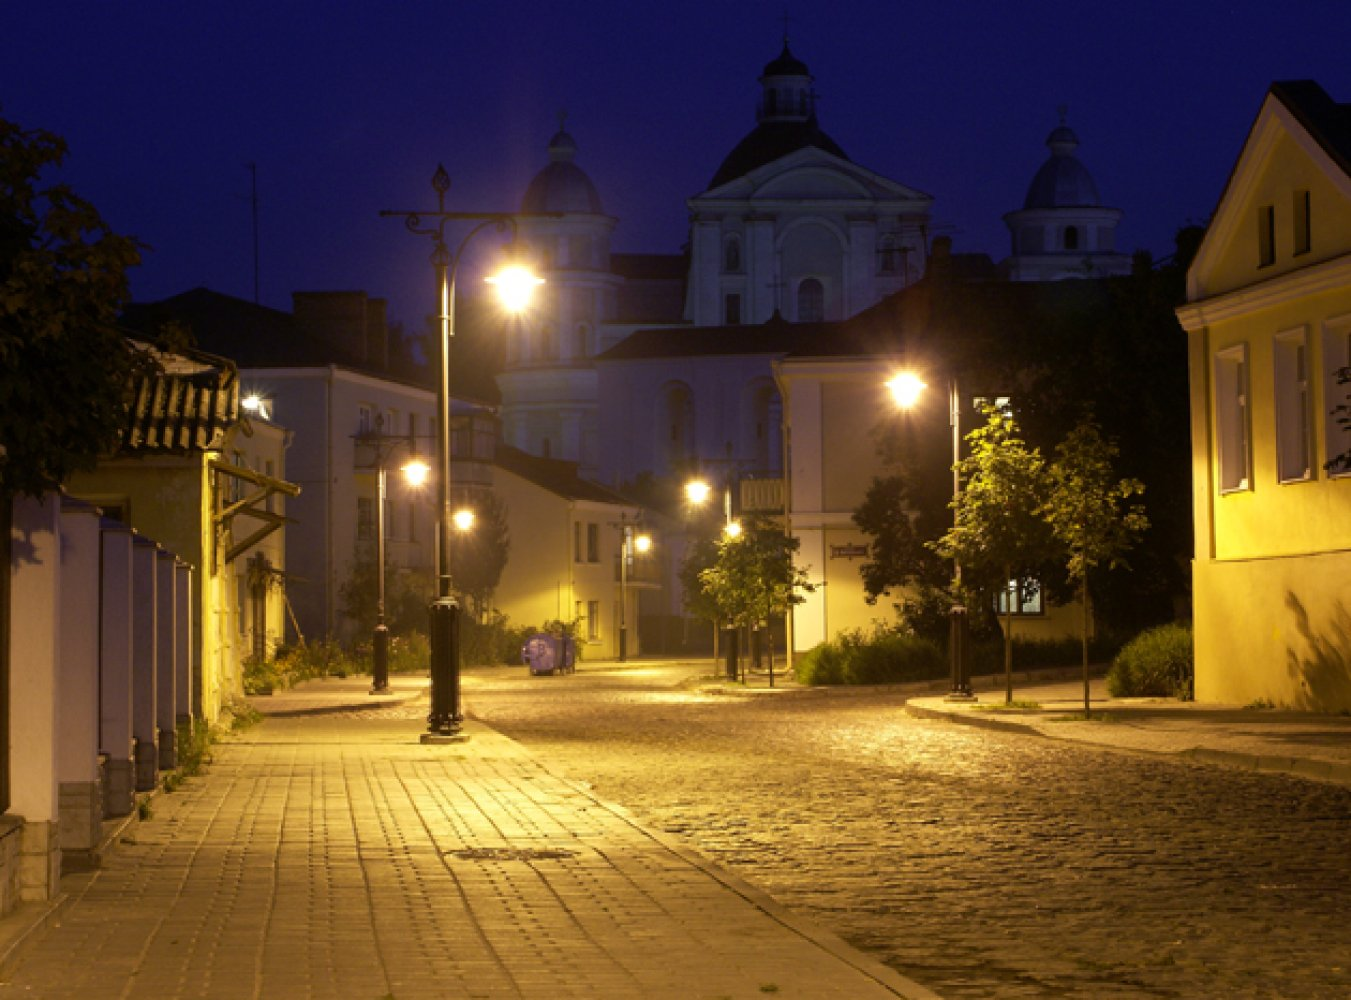 Hotels of Lutsk and the region: a selection of sites